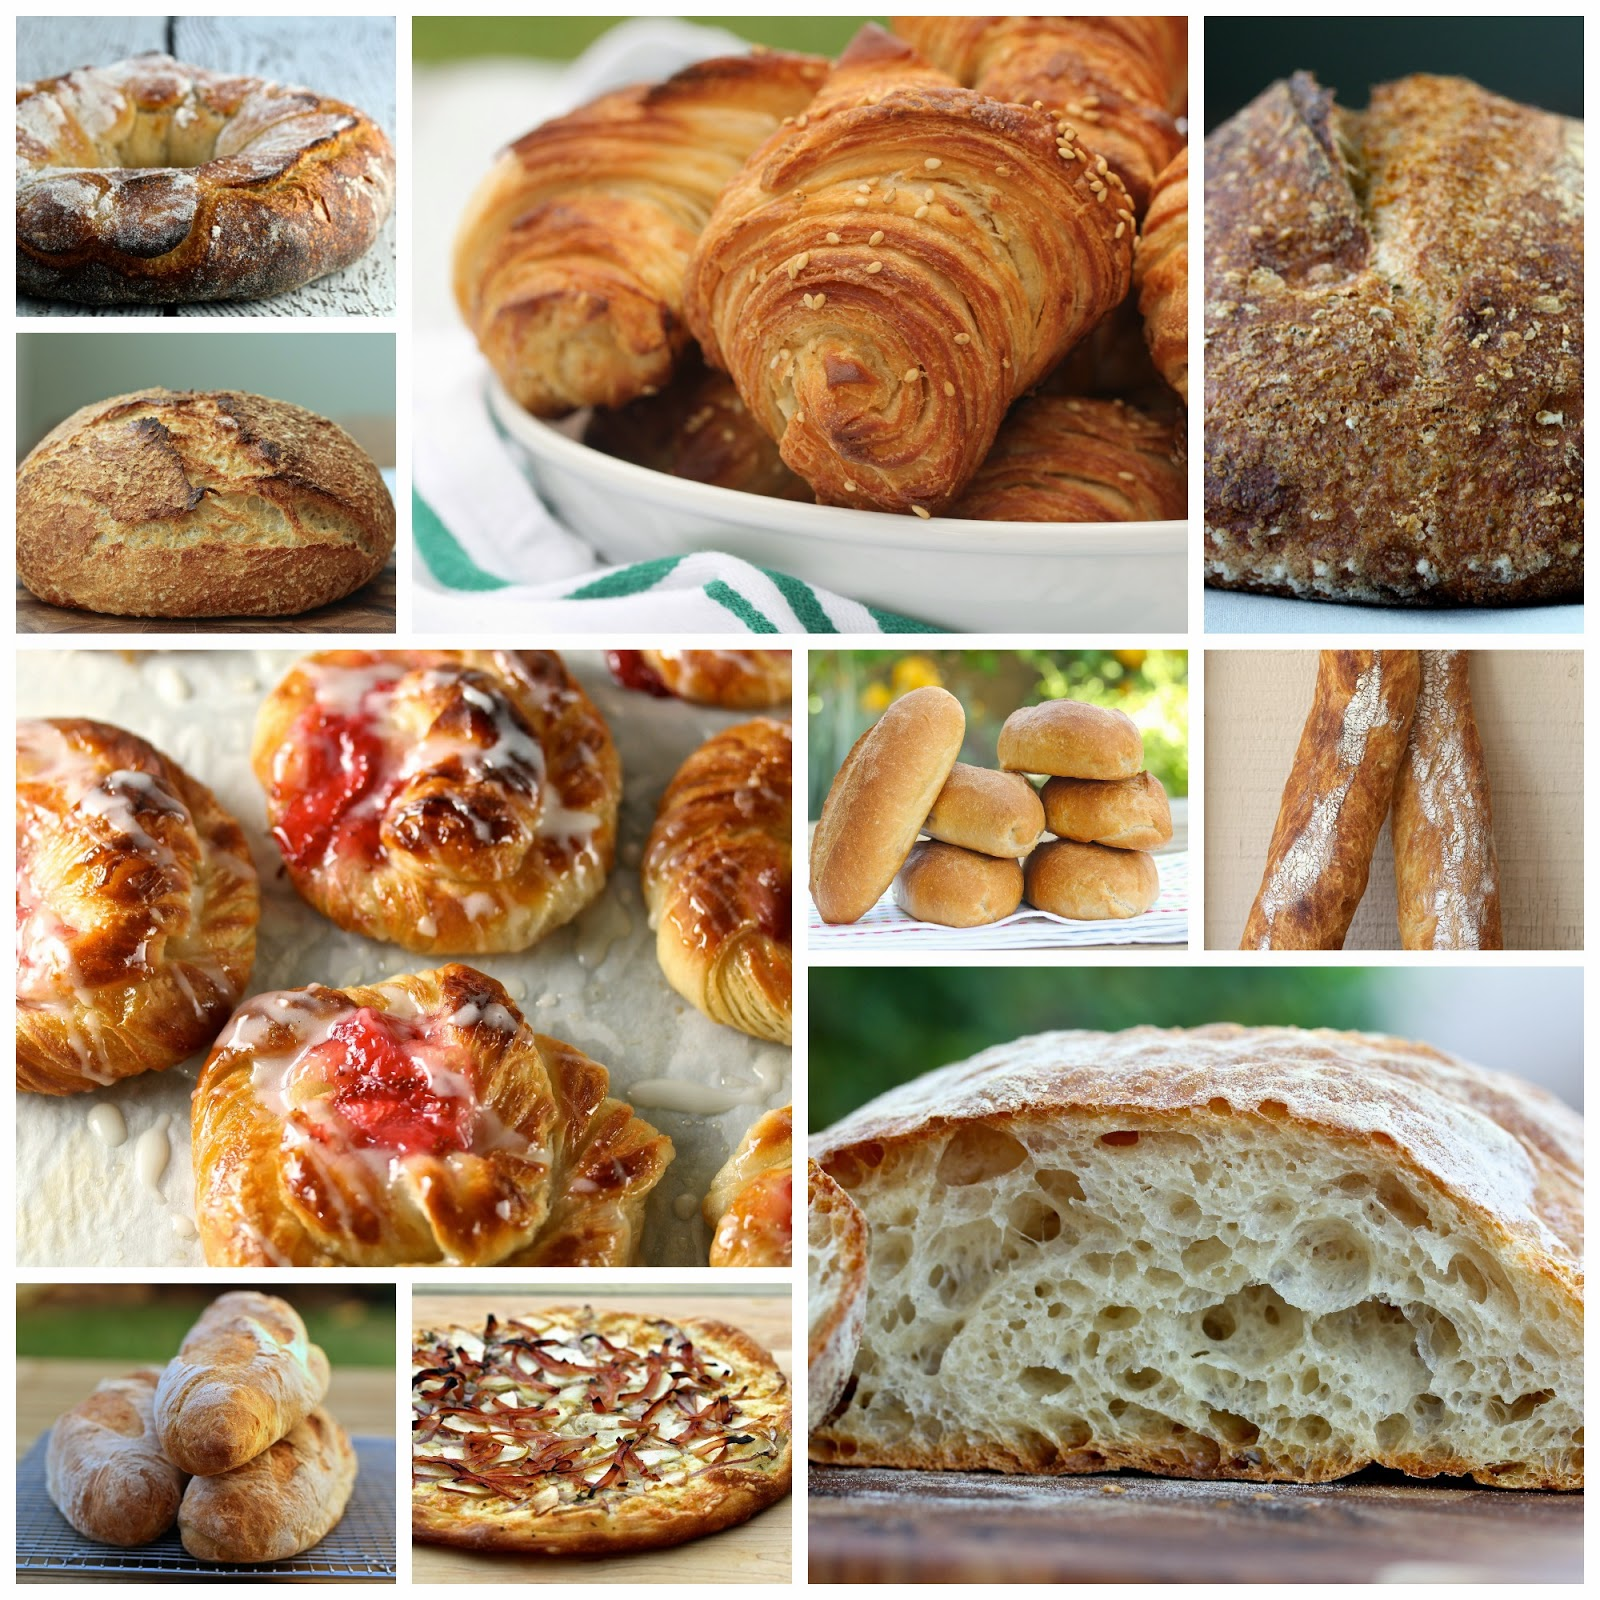 A Round Up of Some of my Favorite Breads from Karen's Kitchen Stories